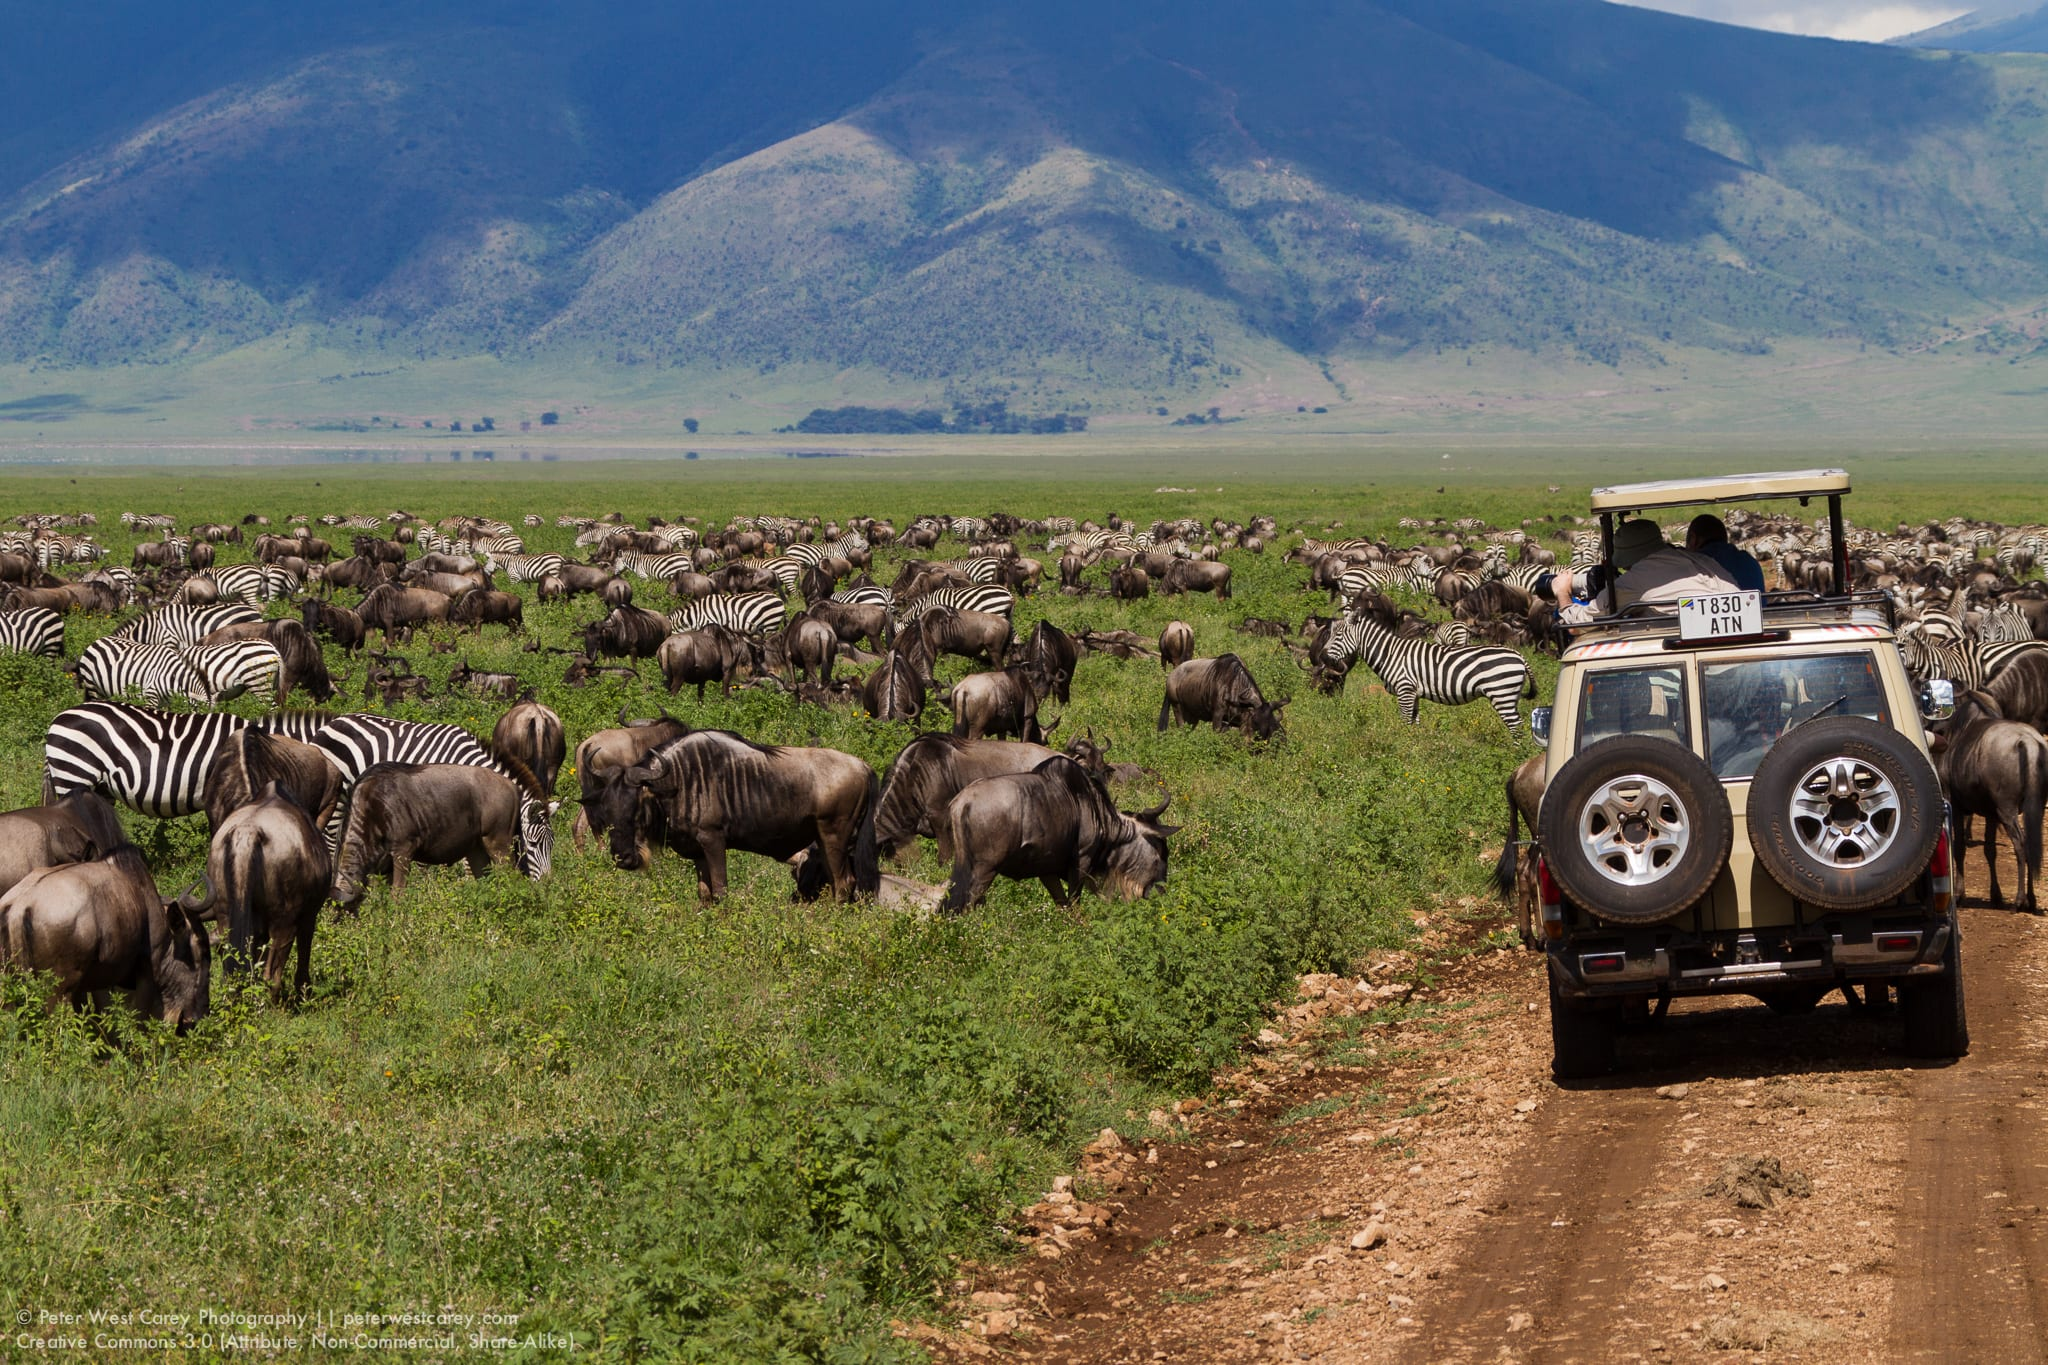 Peter-West-Carey-Tanzania100321-095928-2897